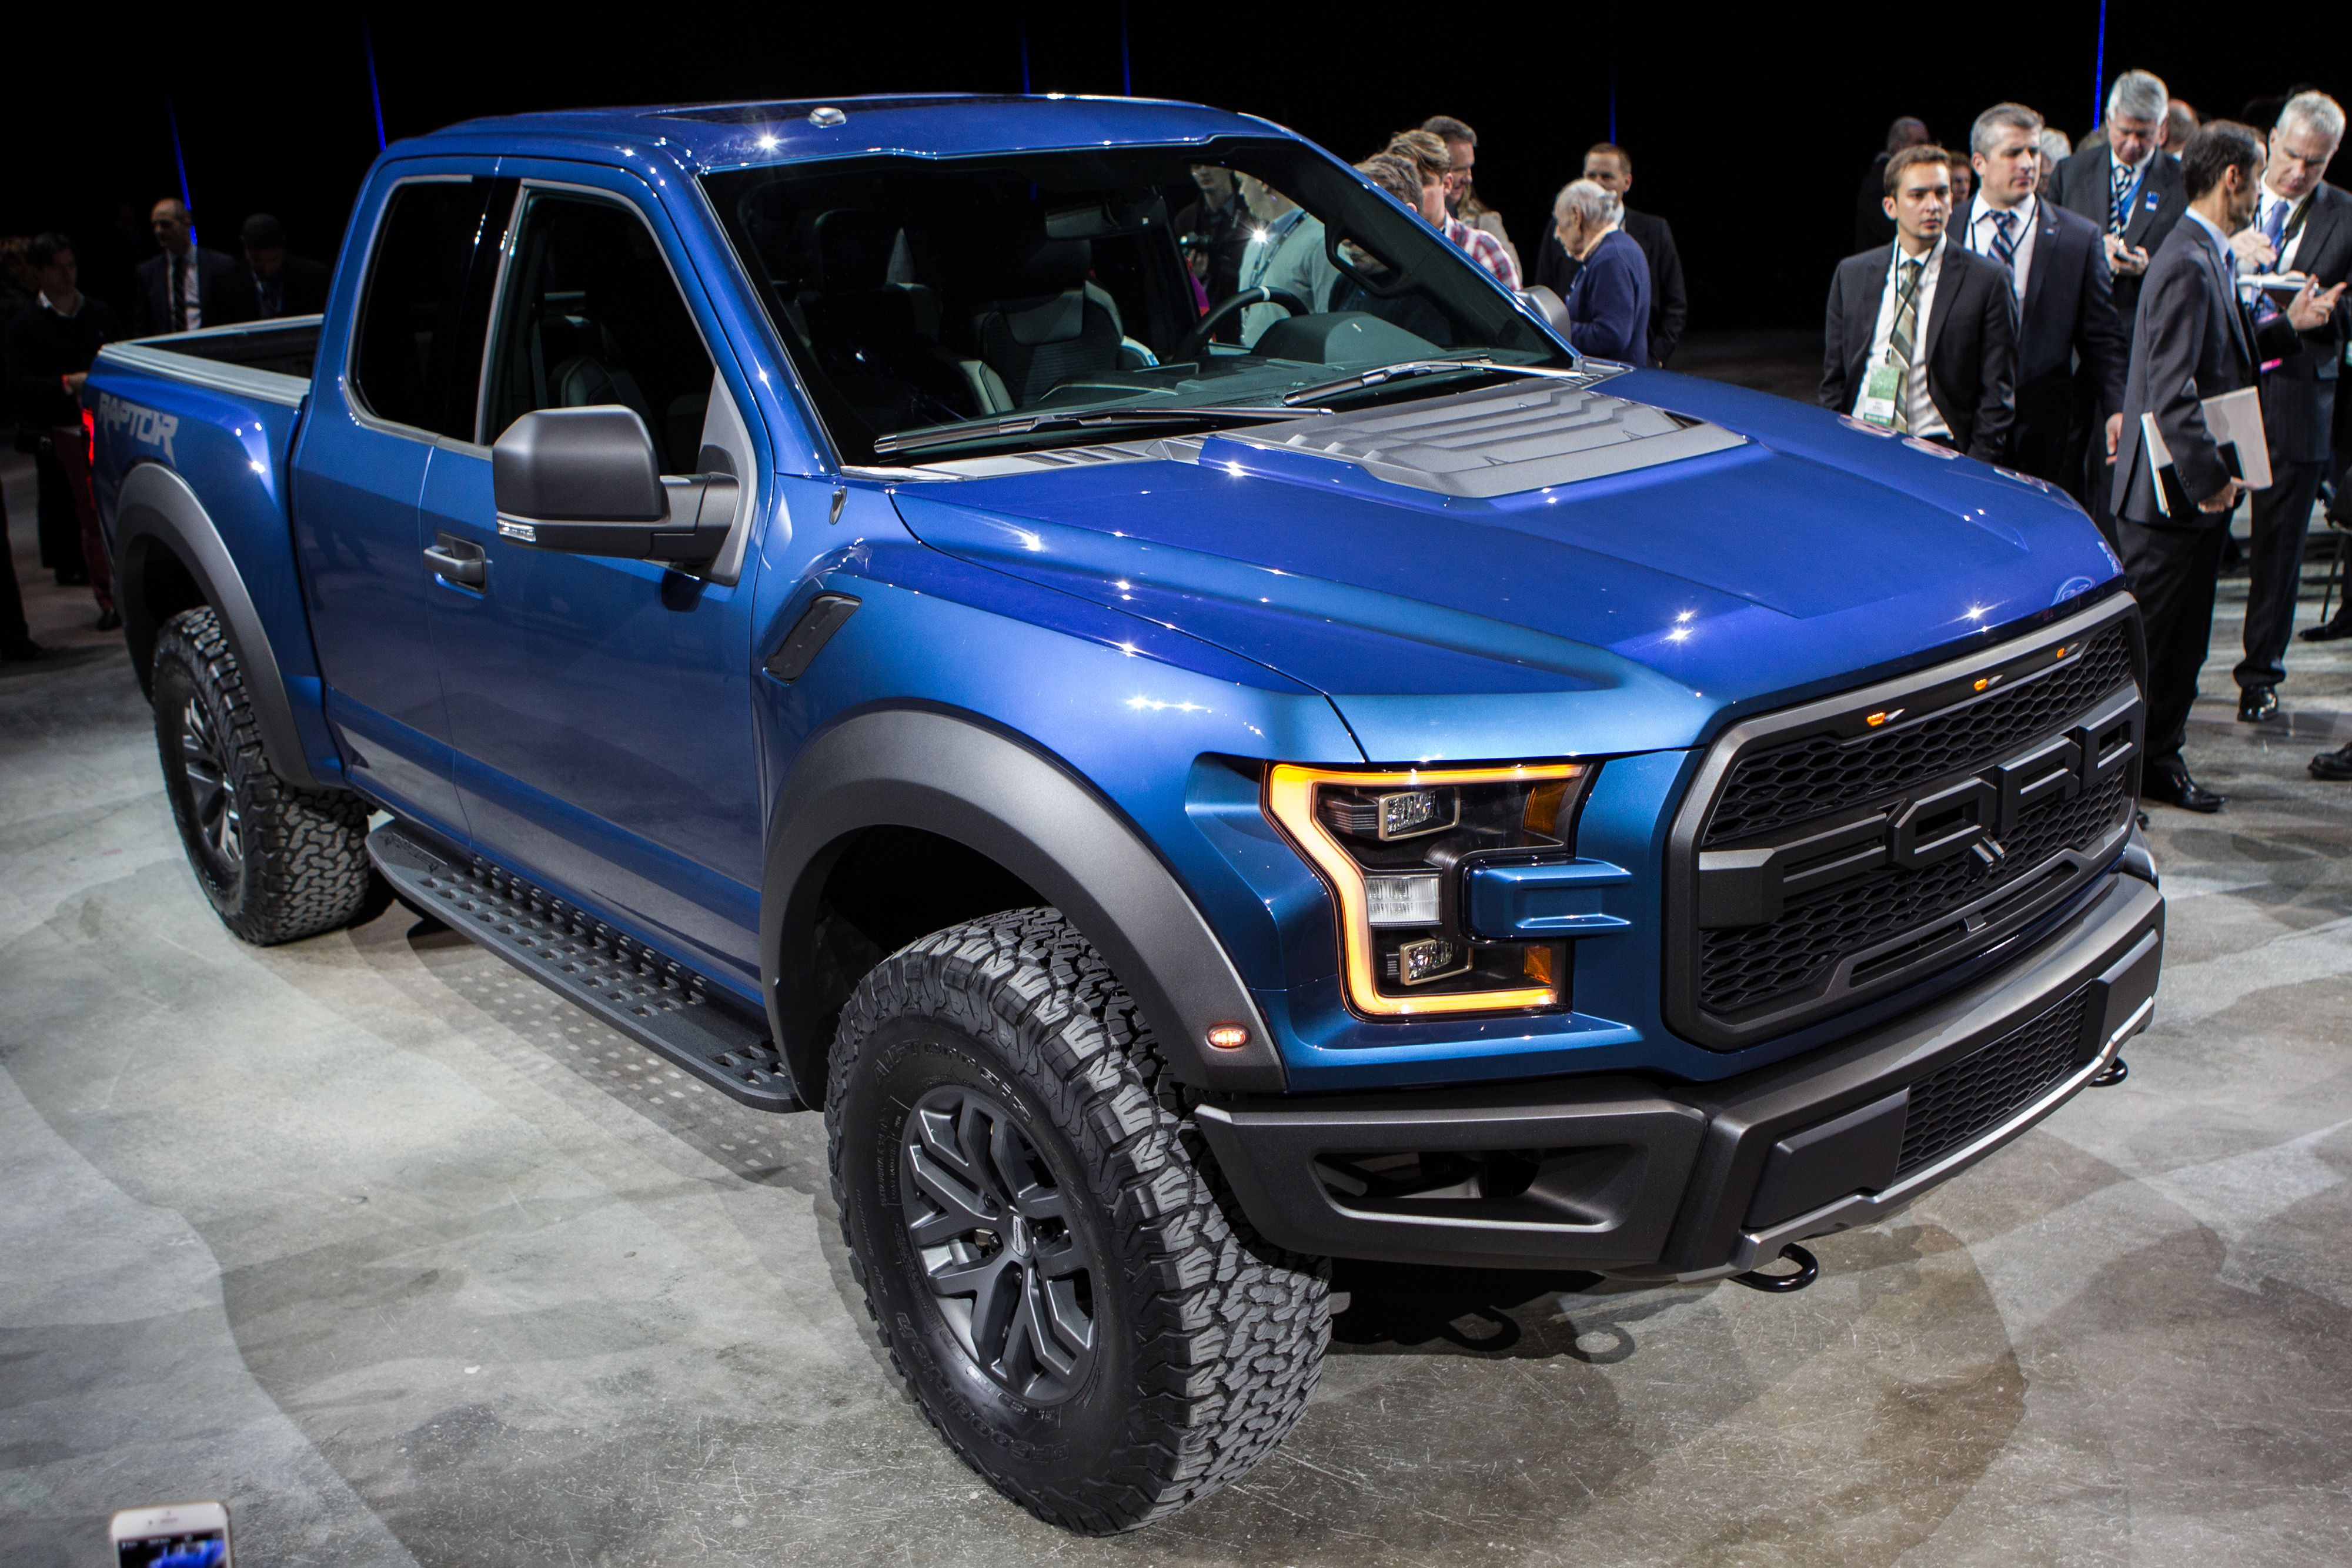 2016 Ford F150 Raptor Live Gallery Ford, Detroit auto